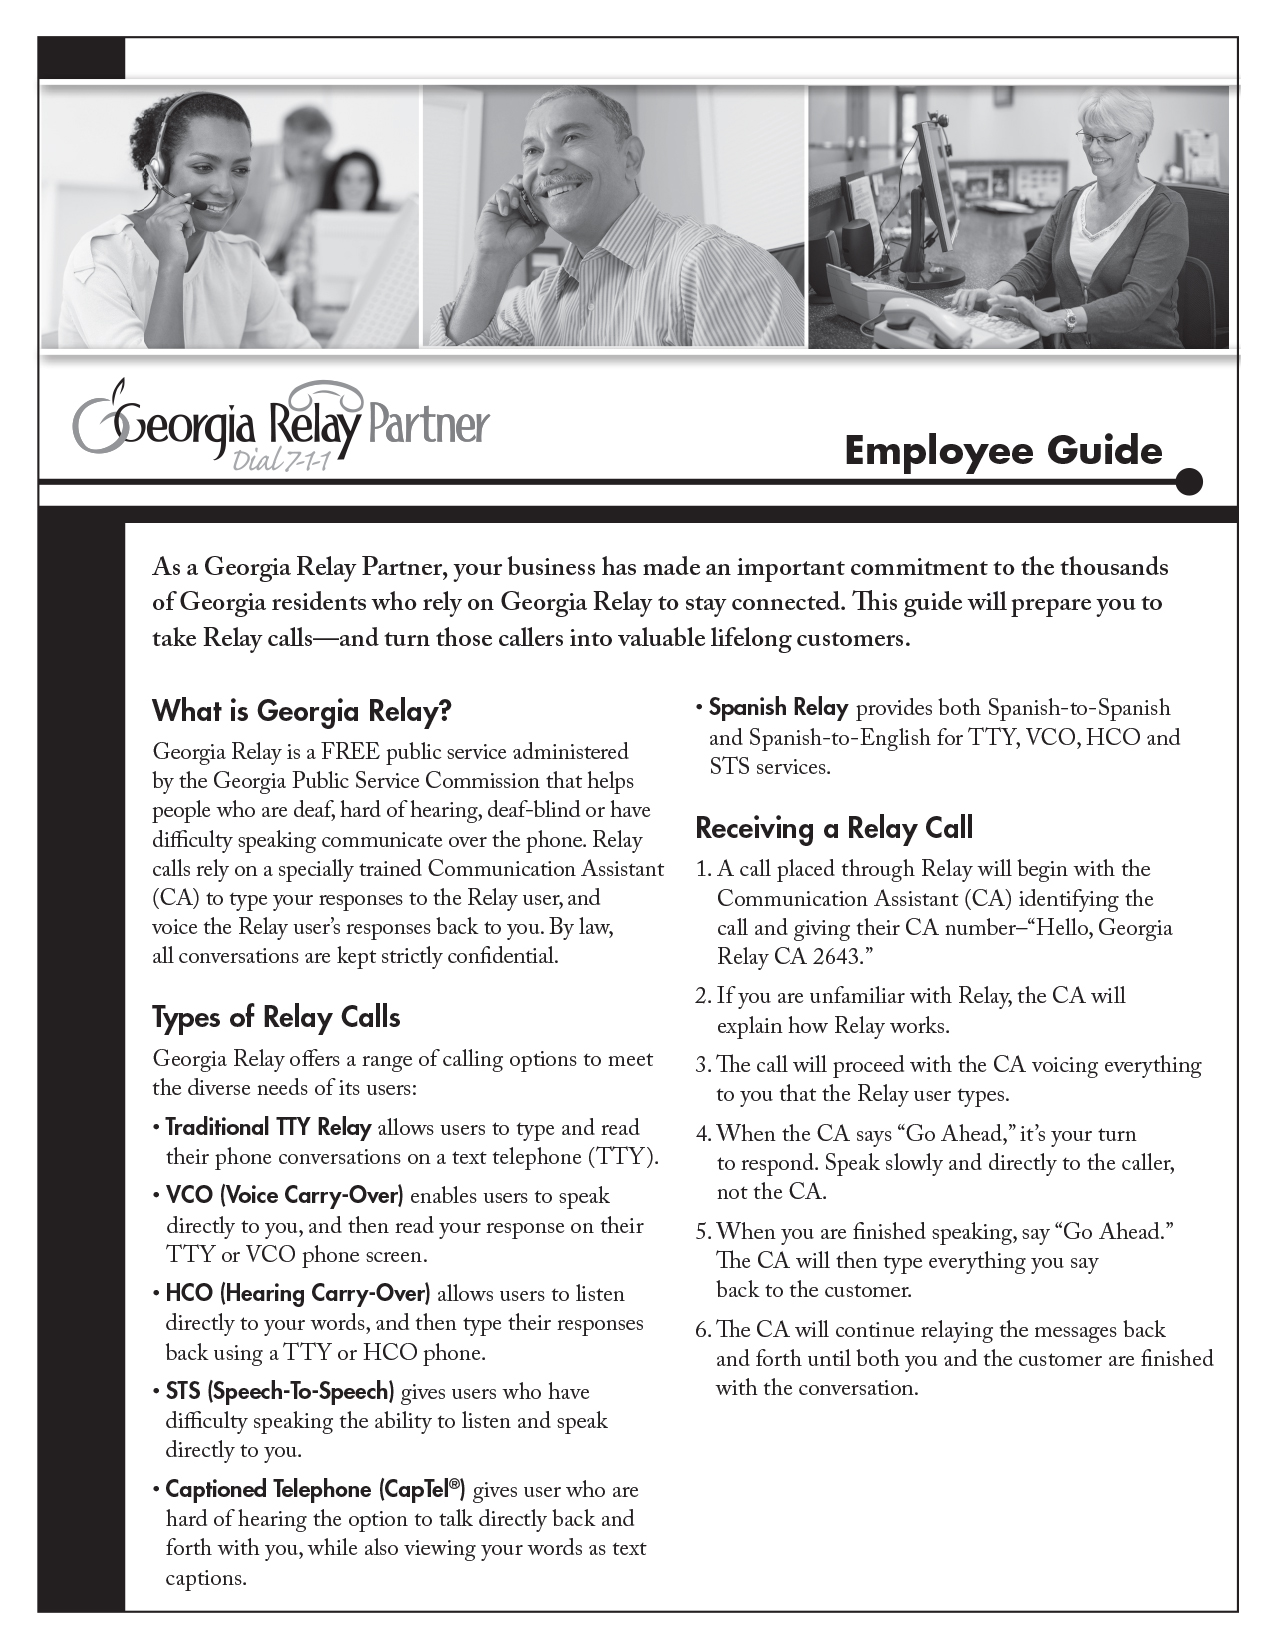 Employee Guide Snapshot